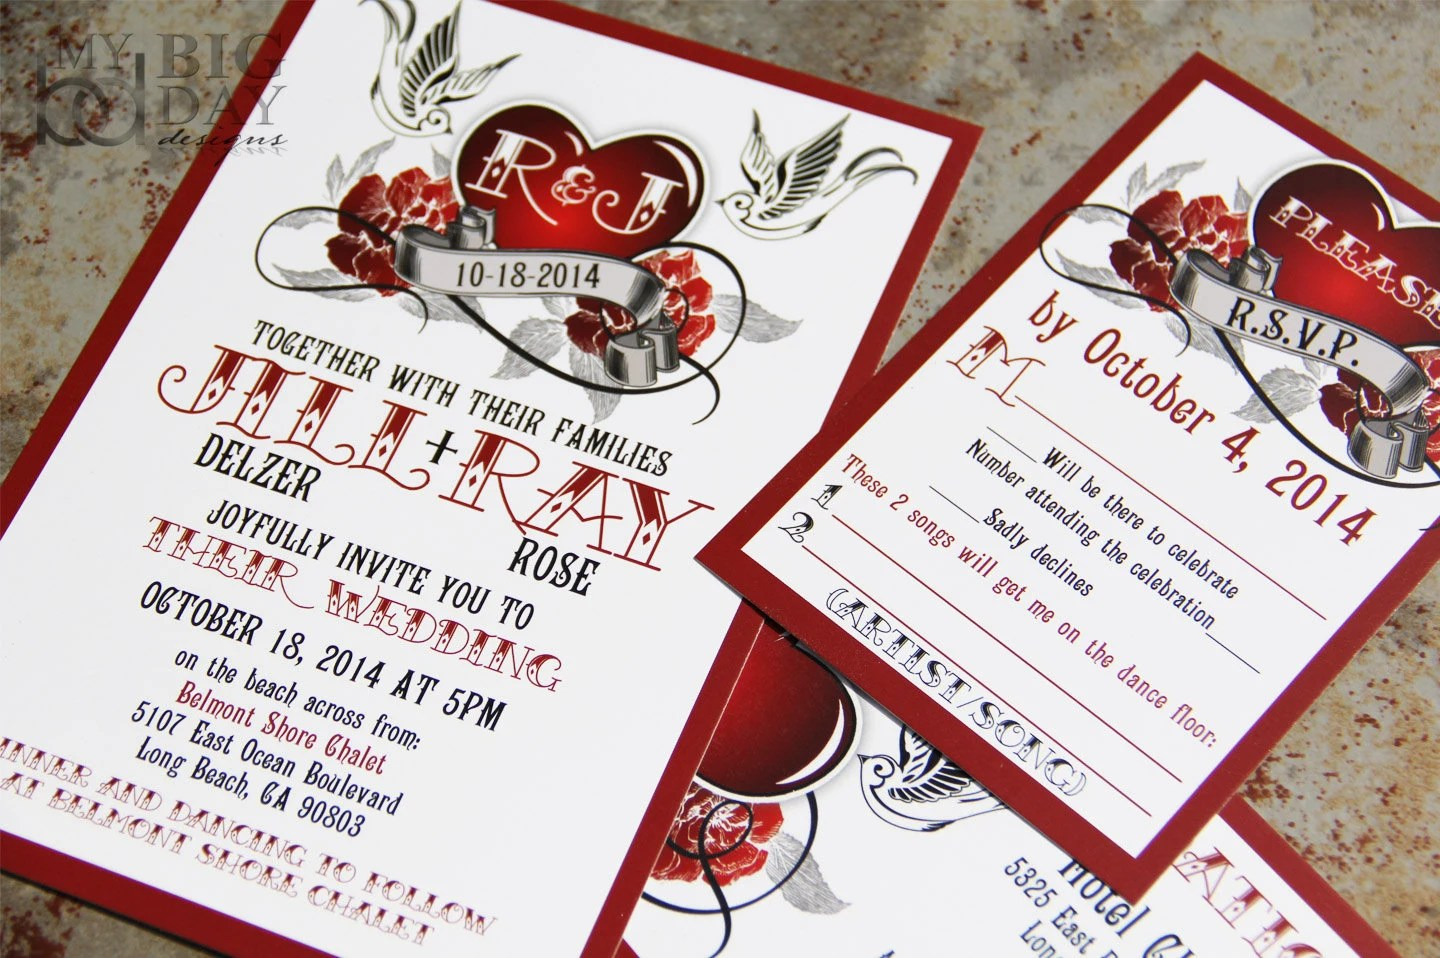 rockabilly wedding invitation set with sparrow lovebirds and roses steampunk heart wedding invitations steampunk wedding invitations Rockabilly Wedding Invitation Set with sparrow lovebirds and roses Steampunk heart wedding invitations